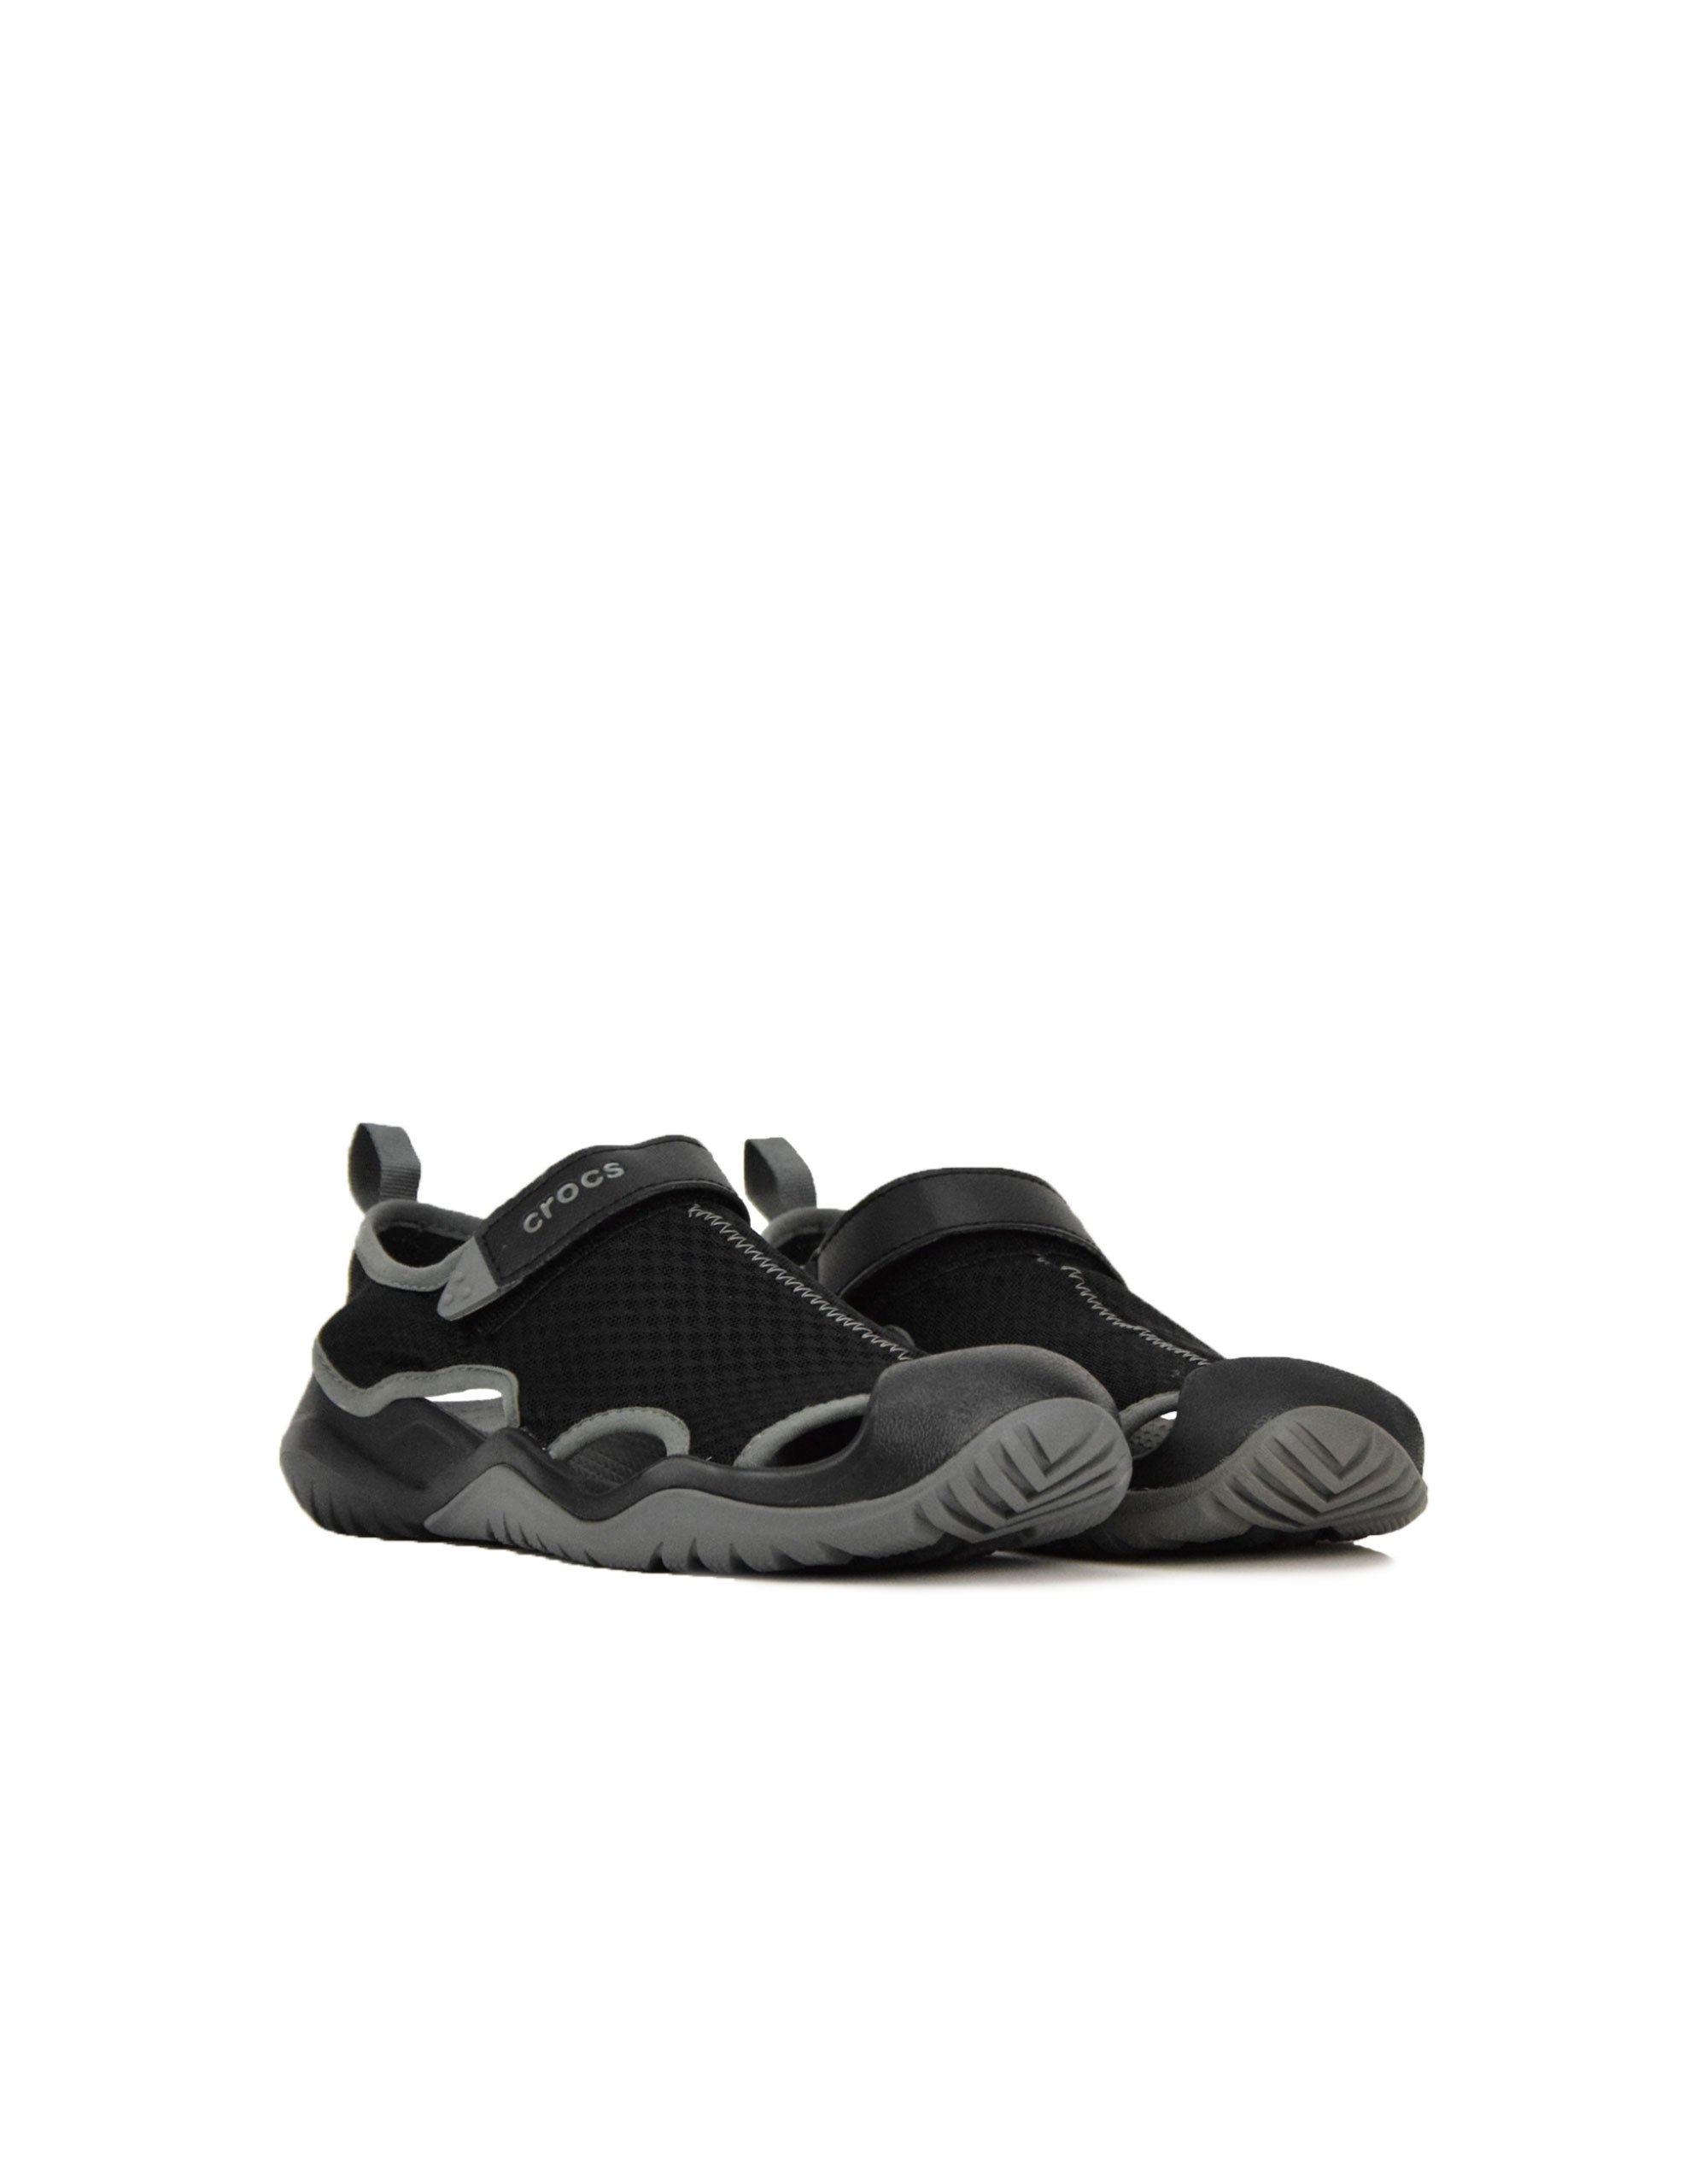 Crocs Swiftwater Mesh Deck Sandal (205289-001) Black